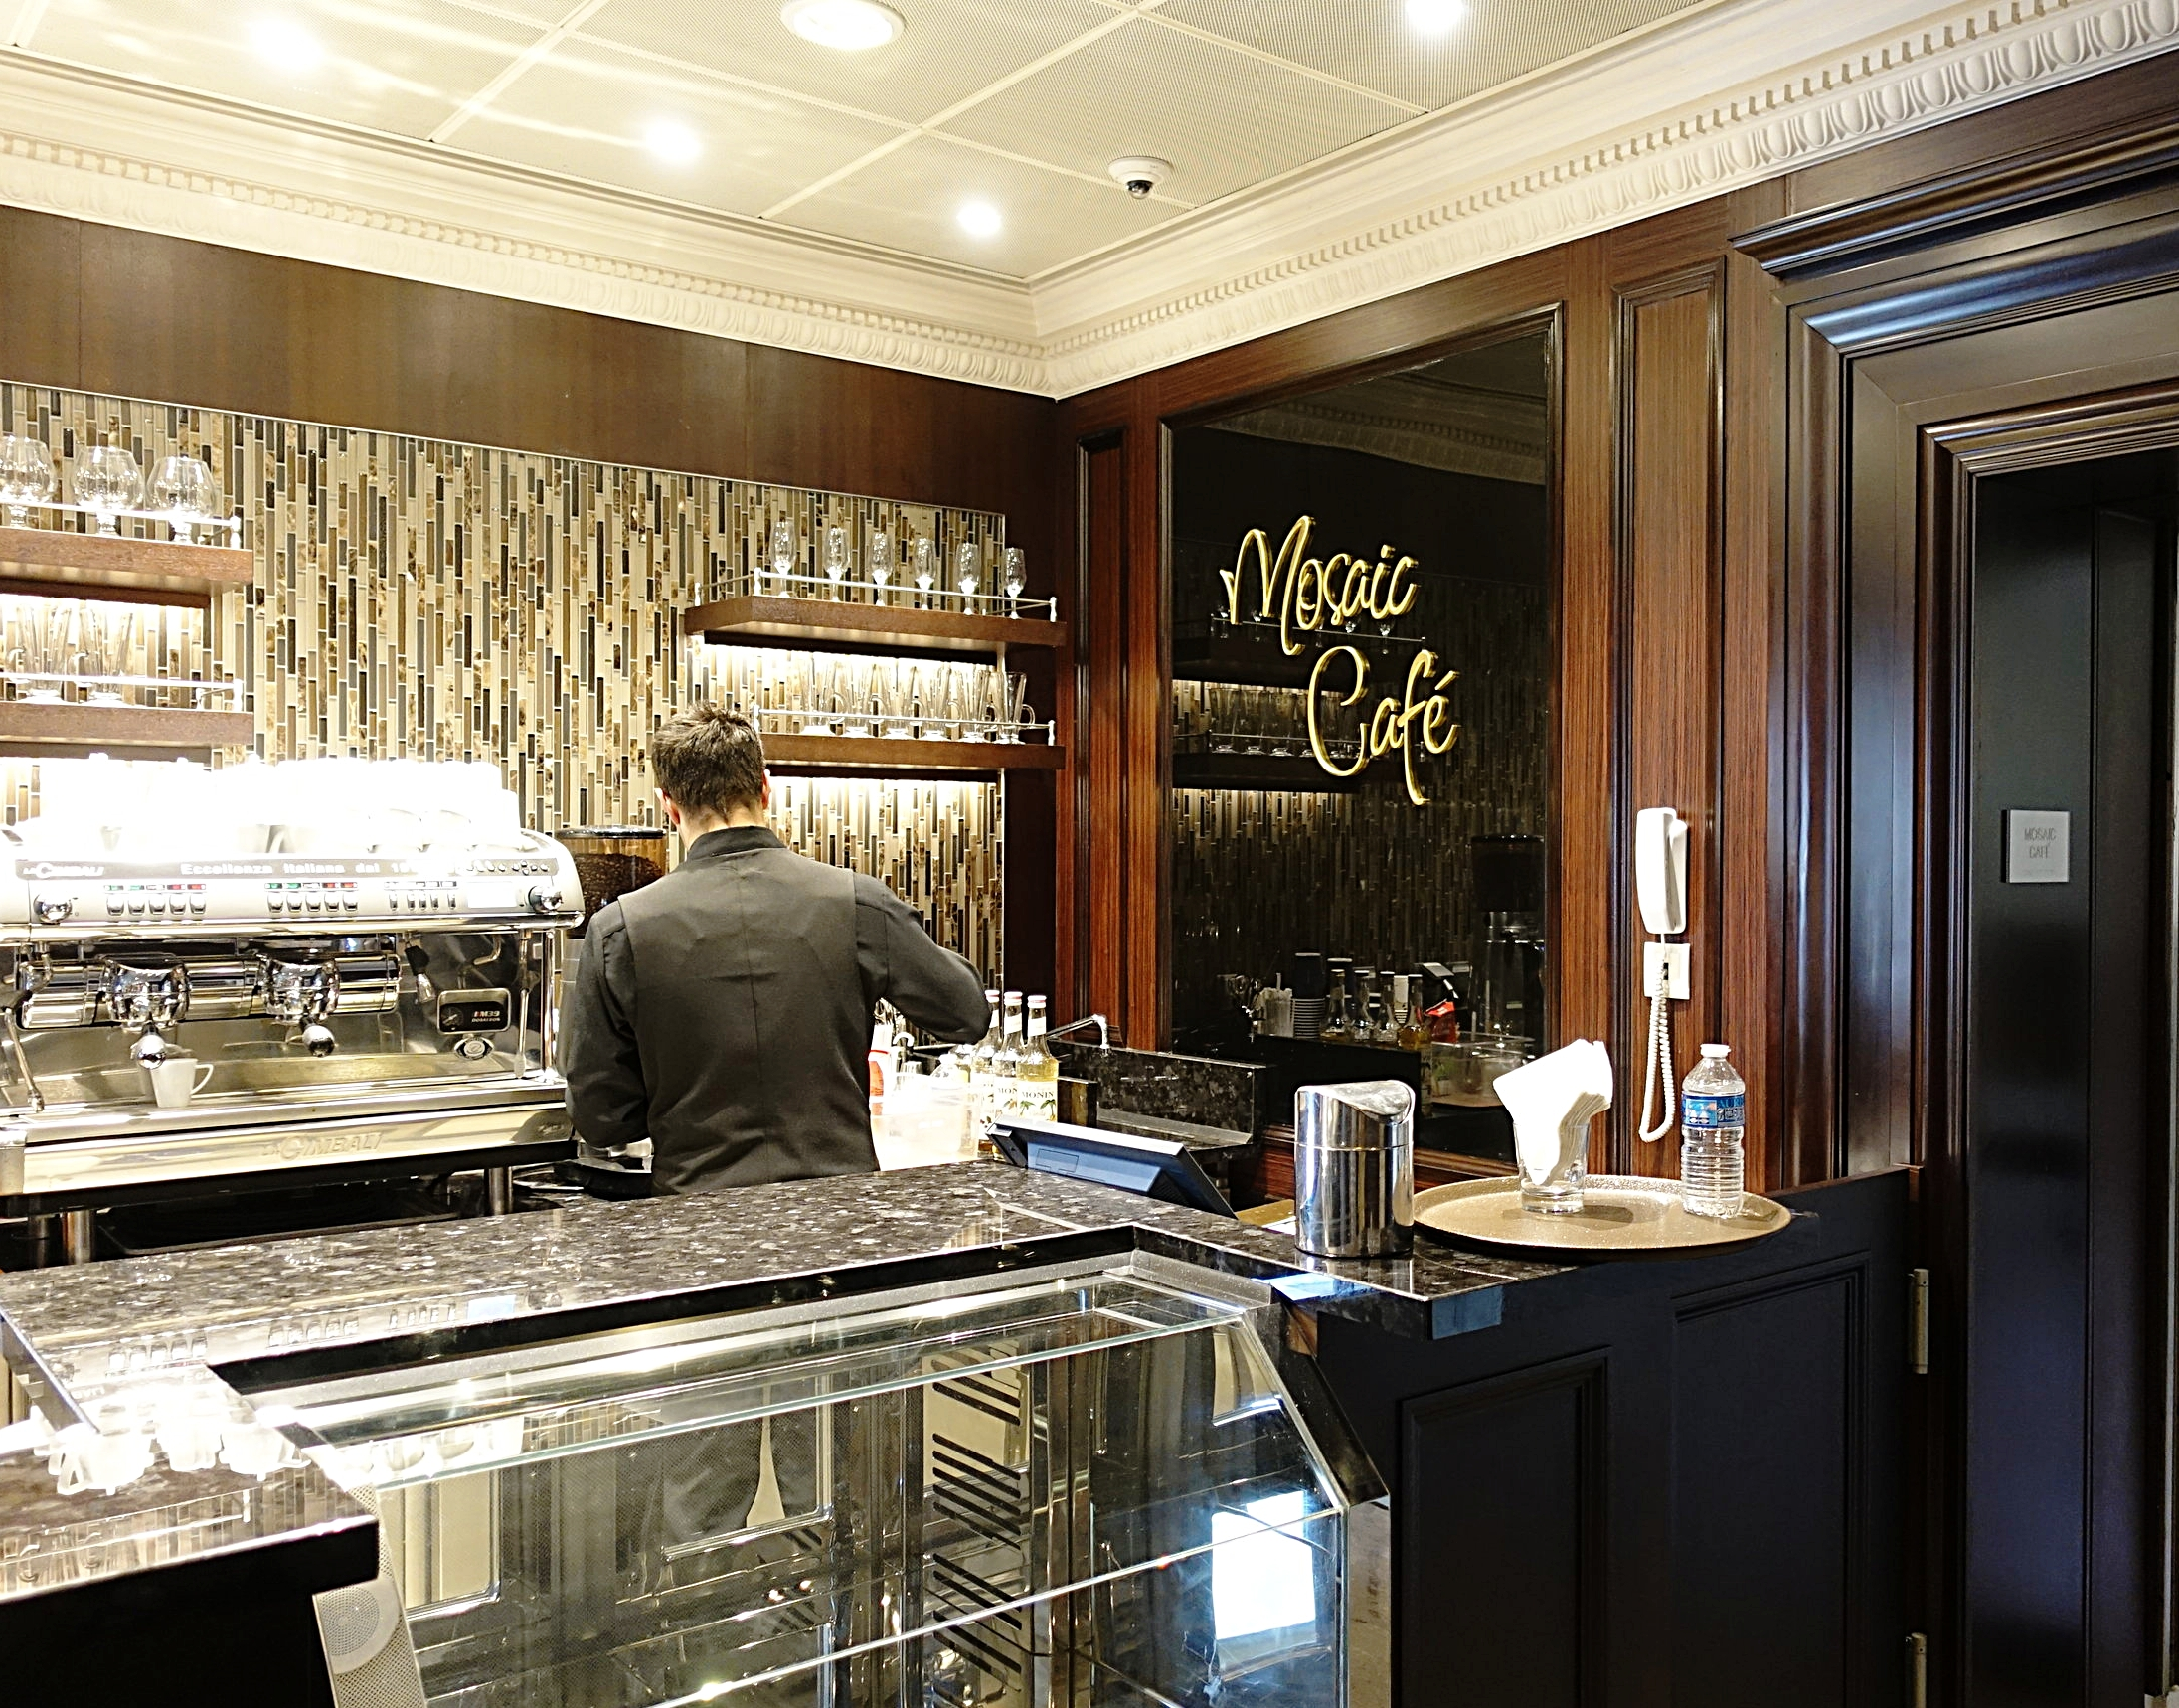 The Mosaic cafe serving hot and cold refreshments and light snacks